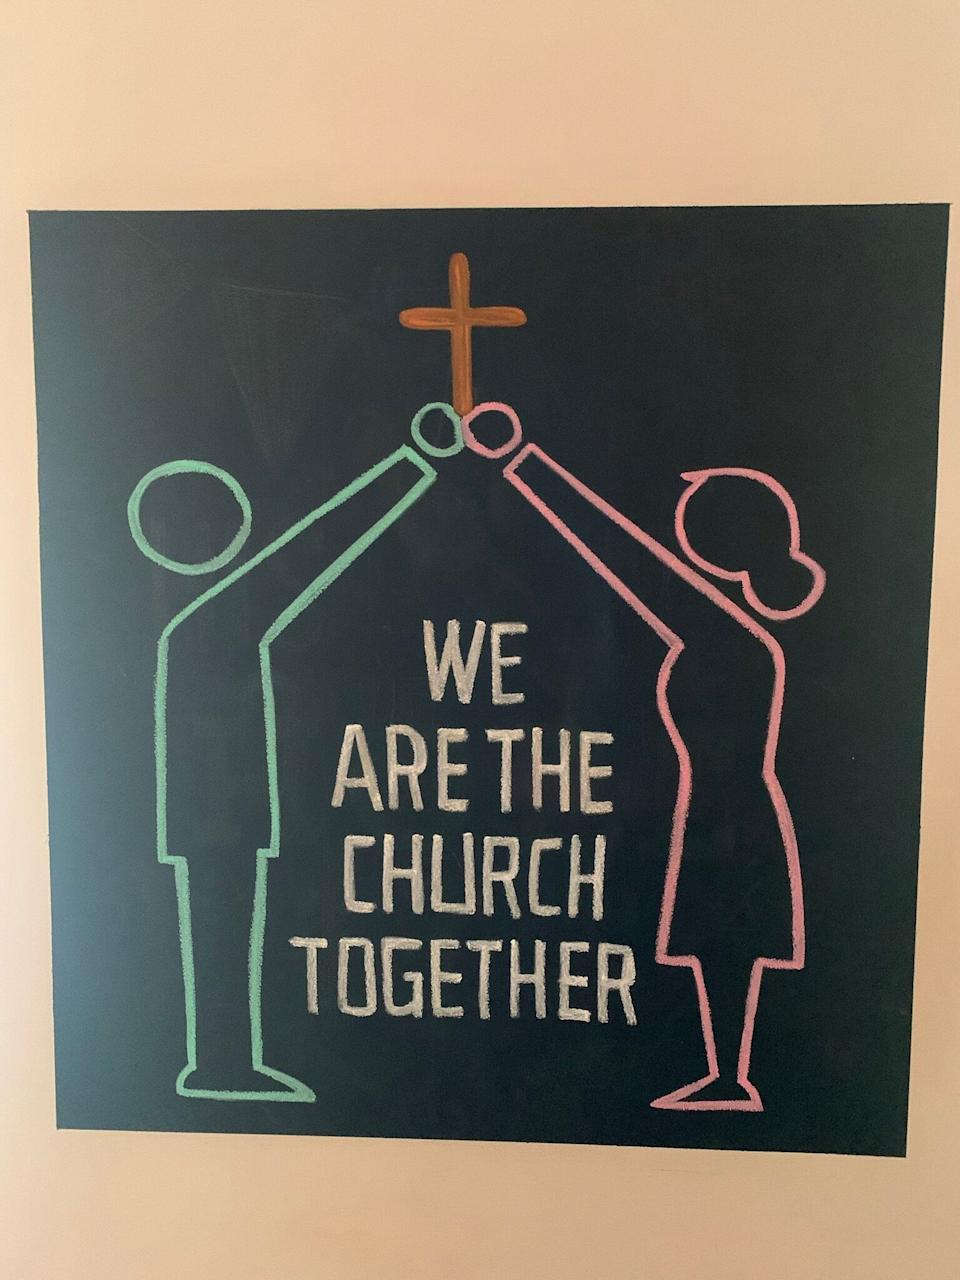 Gathering in-person isn't what defines a church and its congregation. (Photo: Jonathon Shierman)